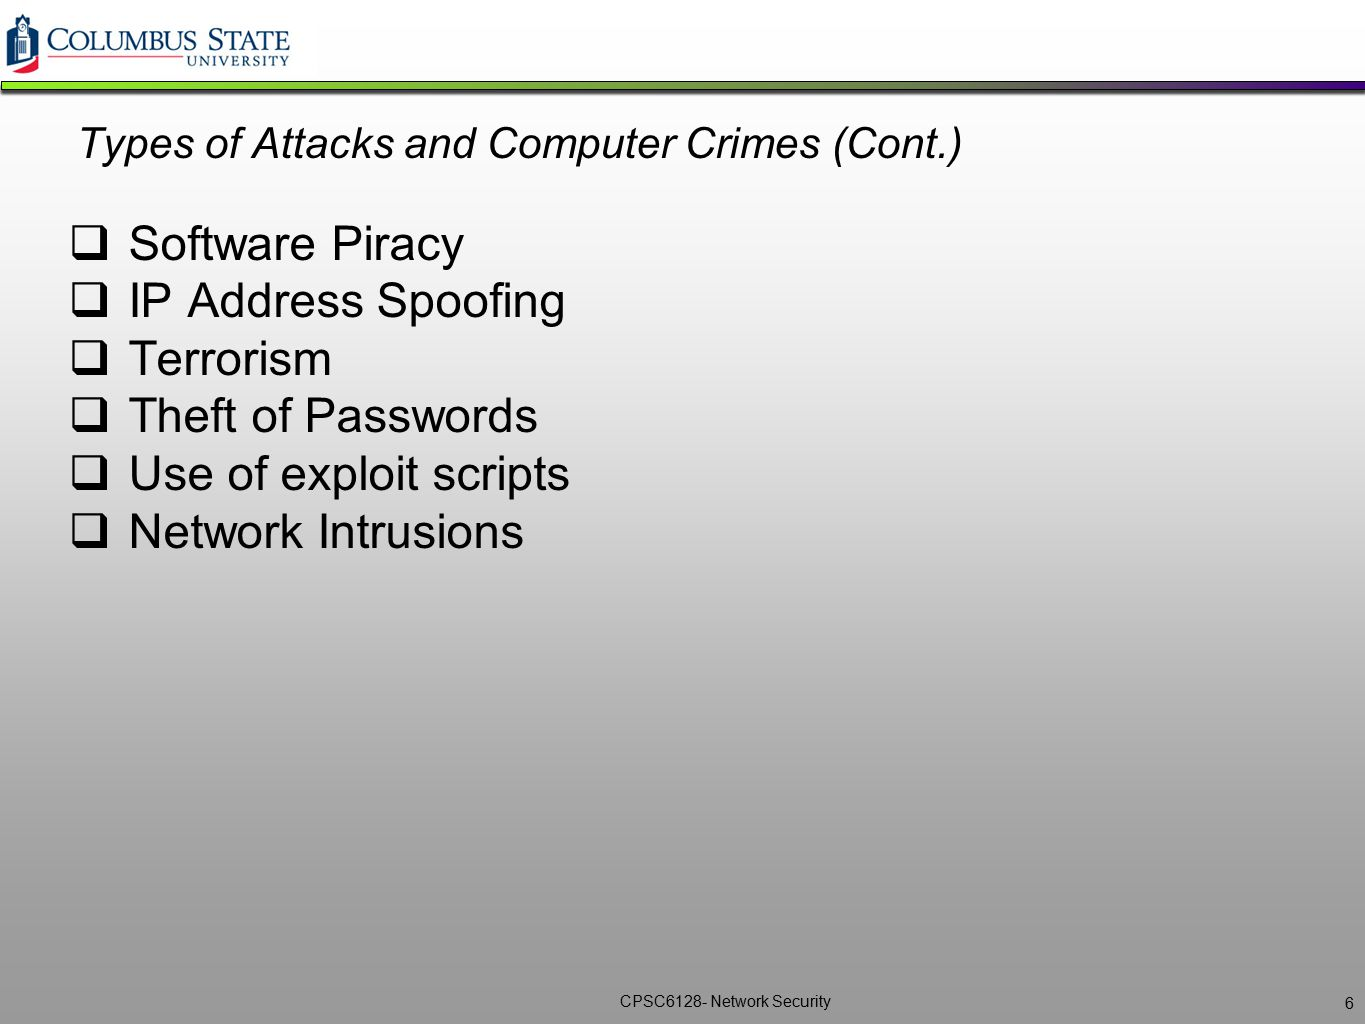 Types of Attacks and Computer Crimes (Cont.)